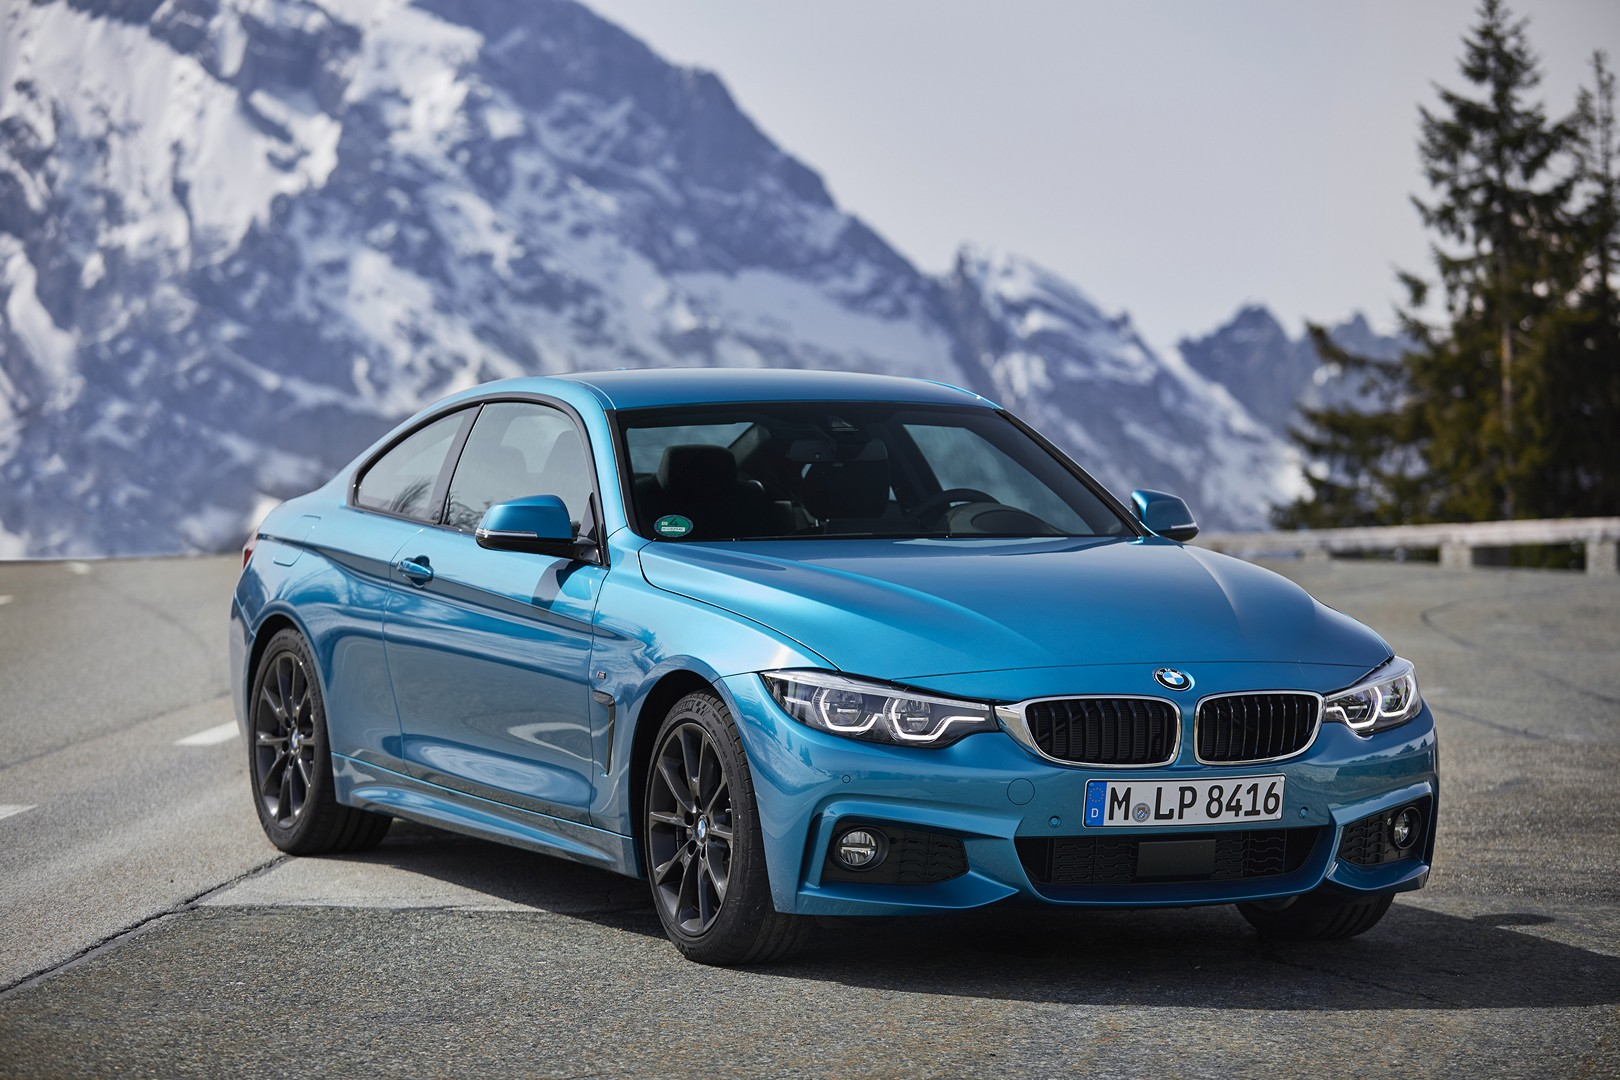 2018 Bmw 440i M Sport Coupe Gets New Launch Photos And Videos